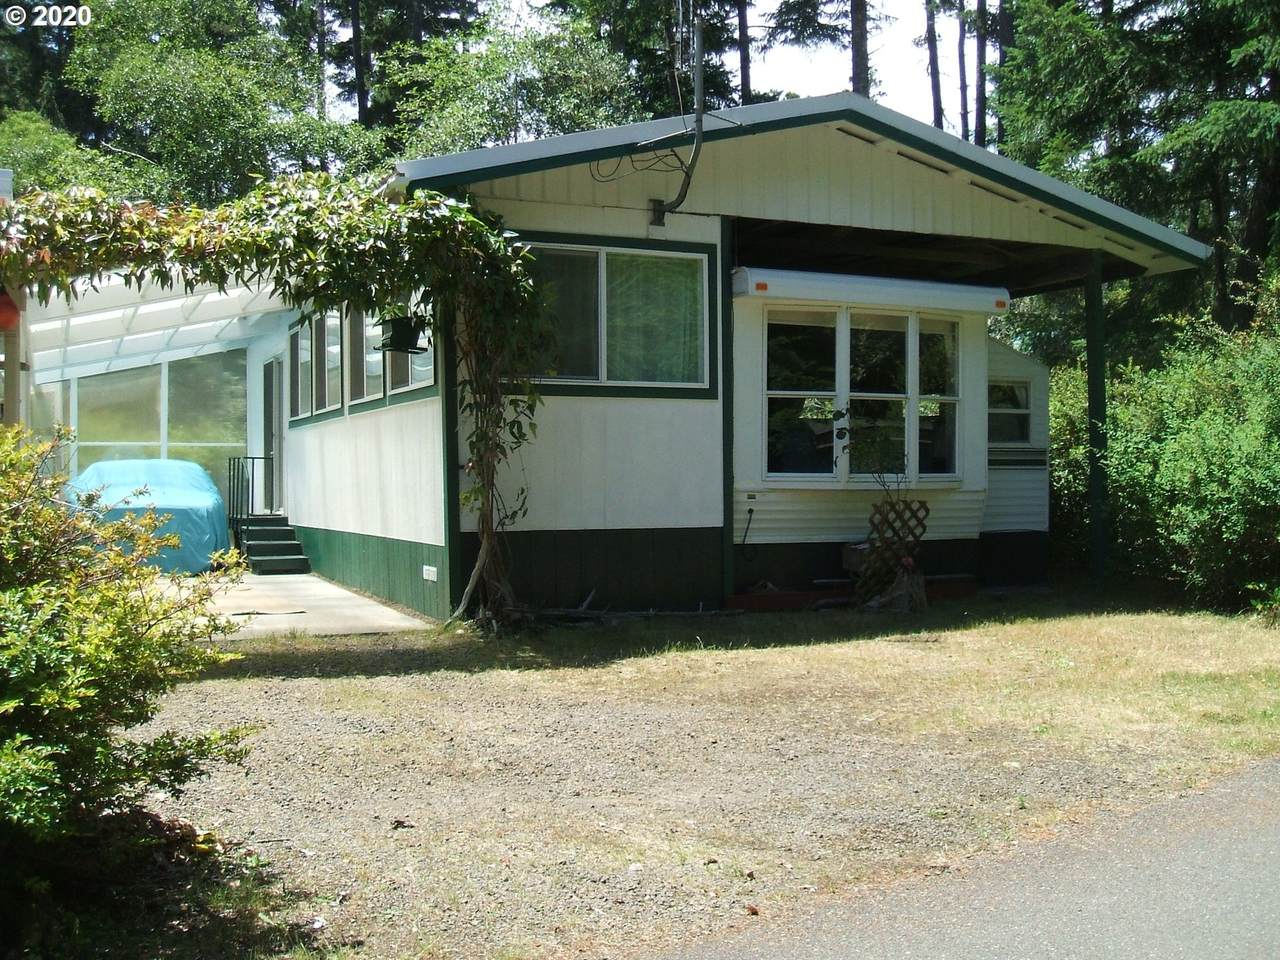 86 Outer Dr - Photo 1